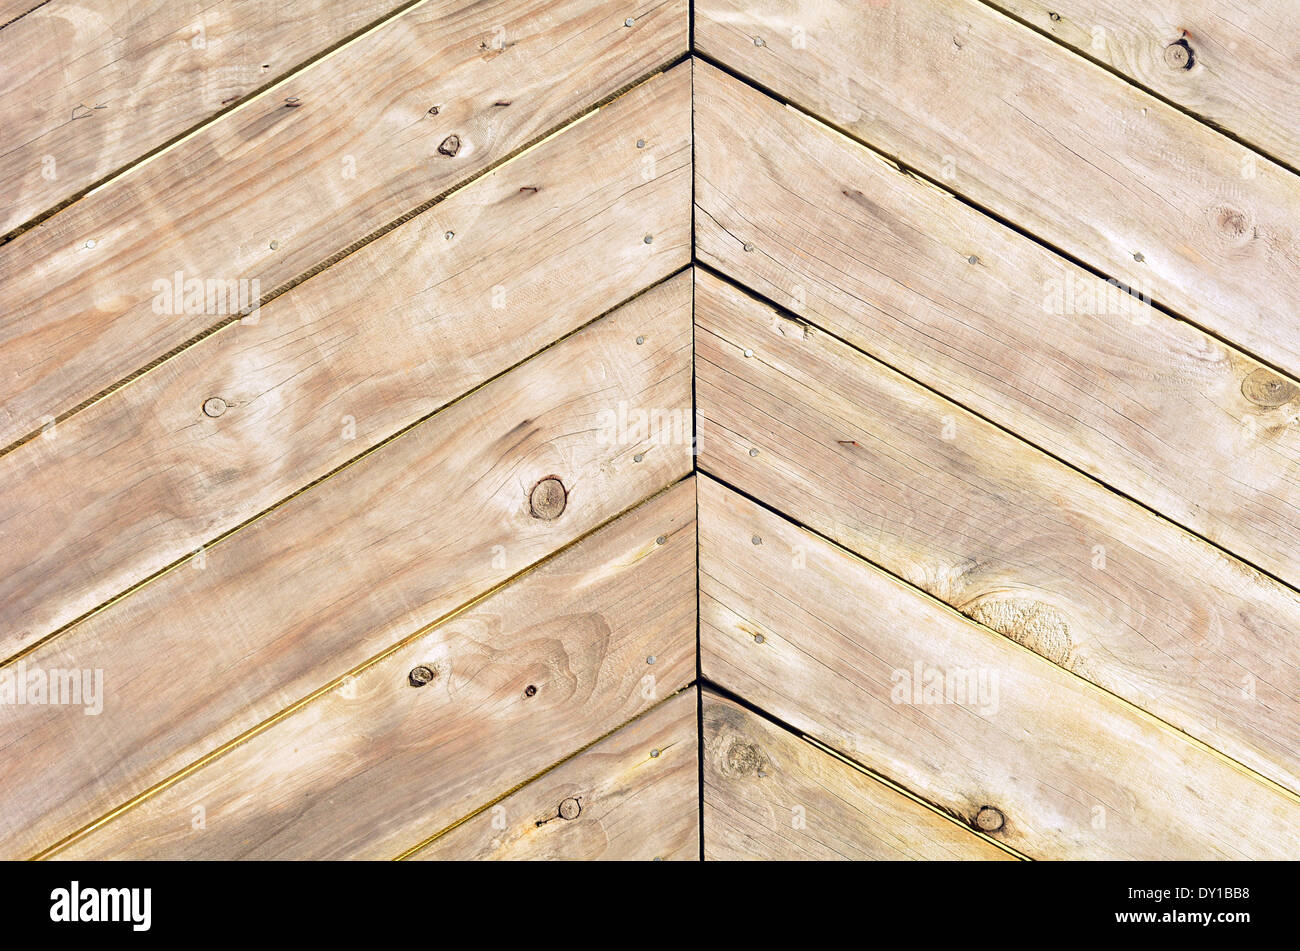 Triangle shape of empty wood planks background texture. - Stock Image